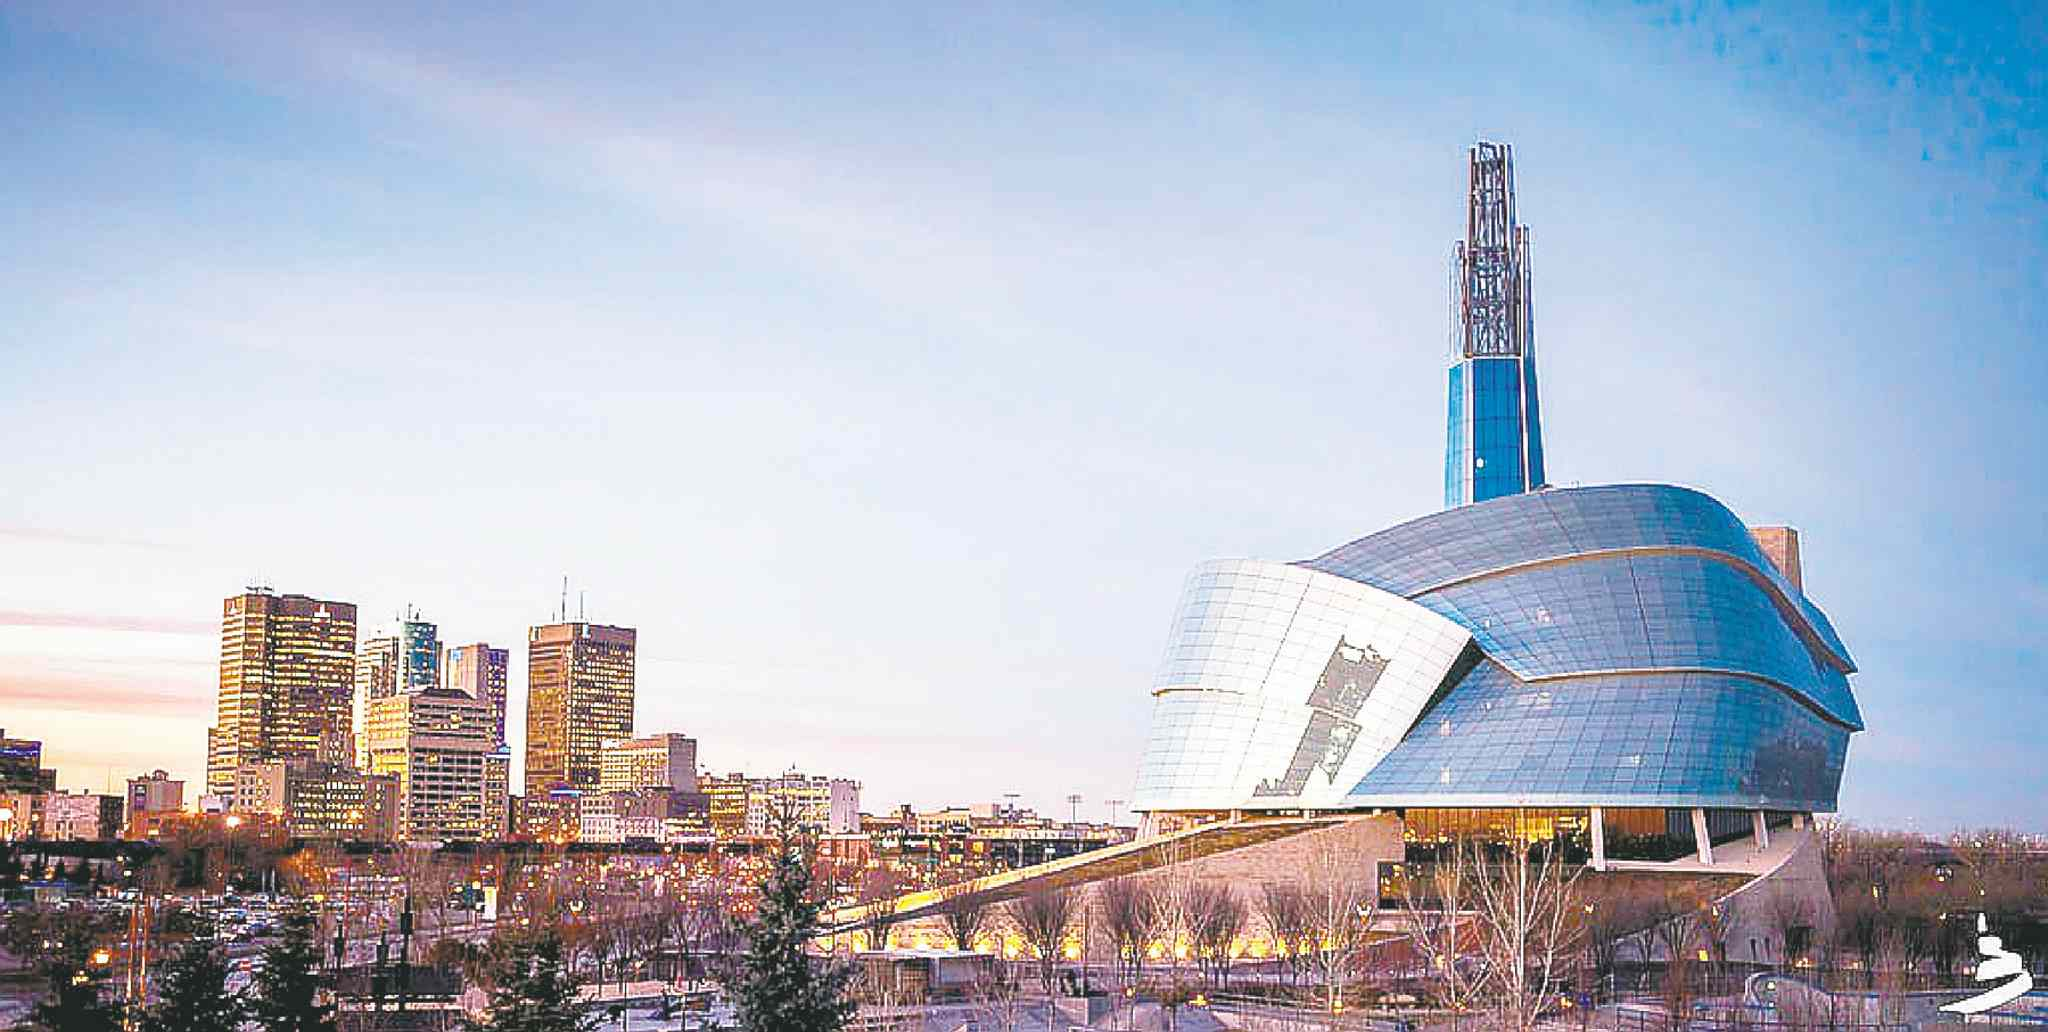 The Canadian Museum for Human Rights would be an excellent place to hold inquests, columnist James Turner argues.